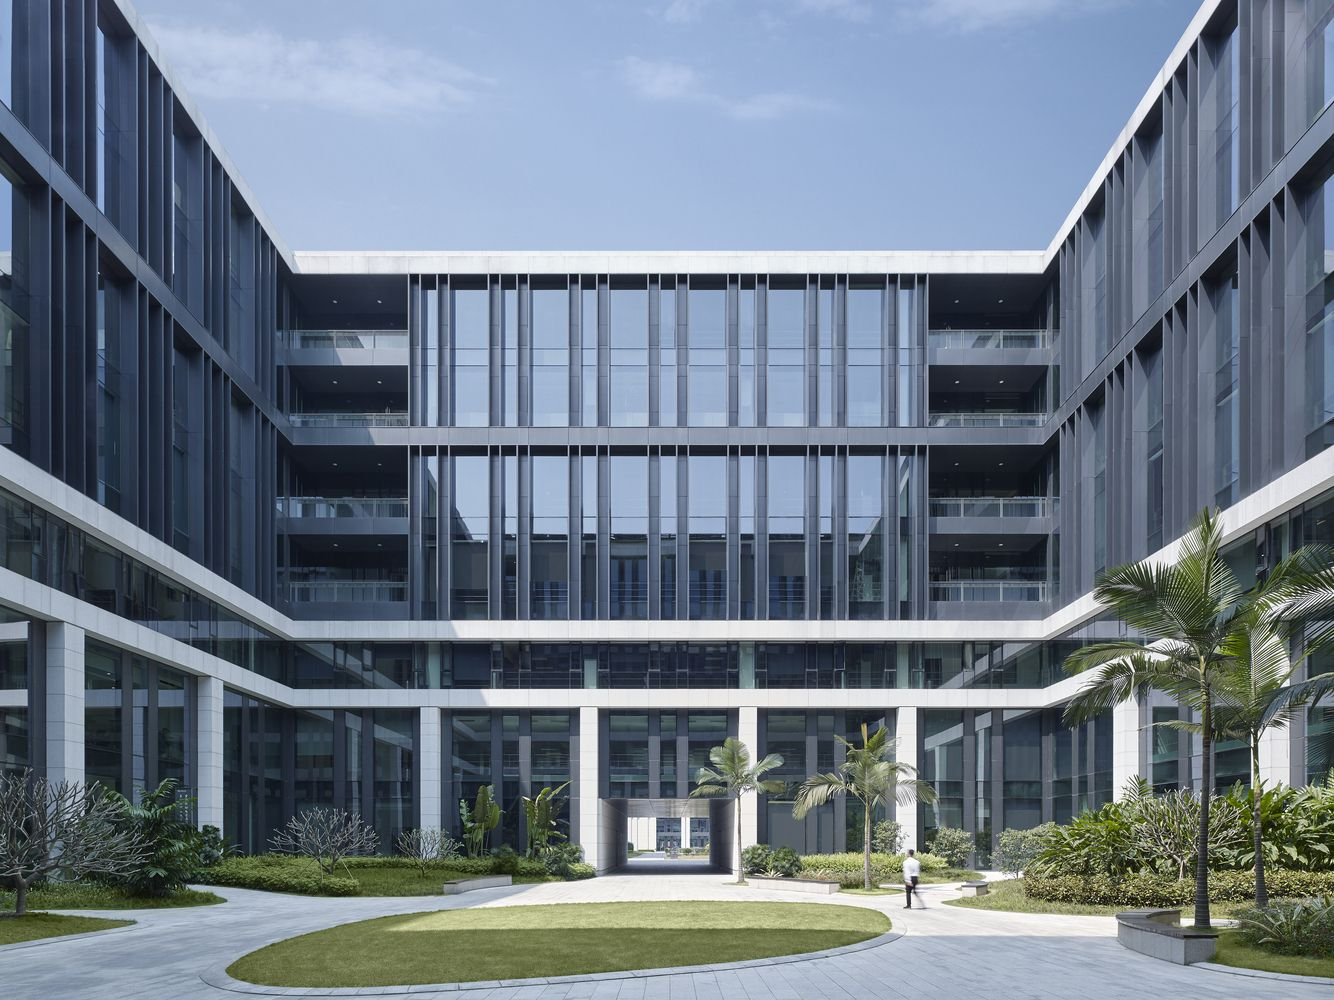 Gallery of china southern power grid green campus offices